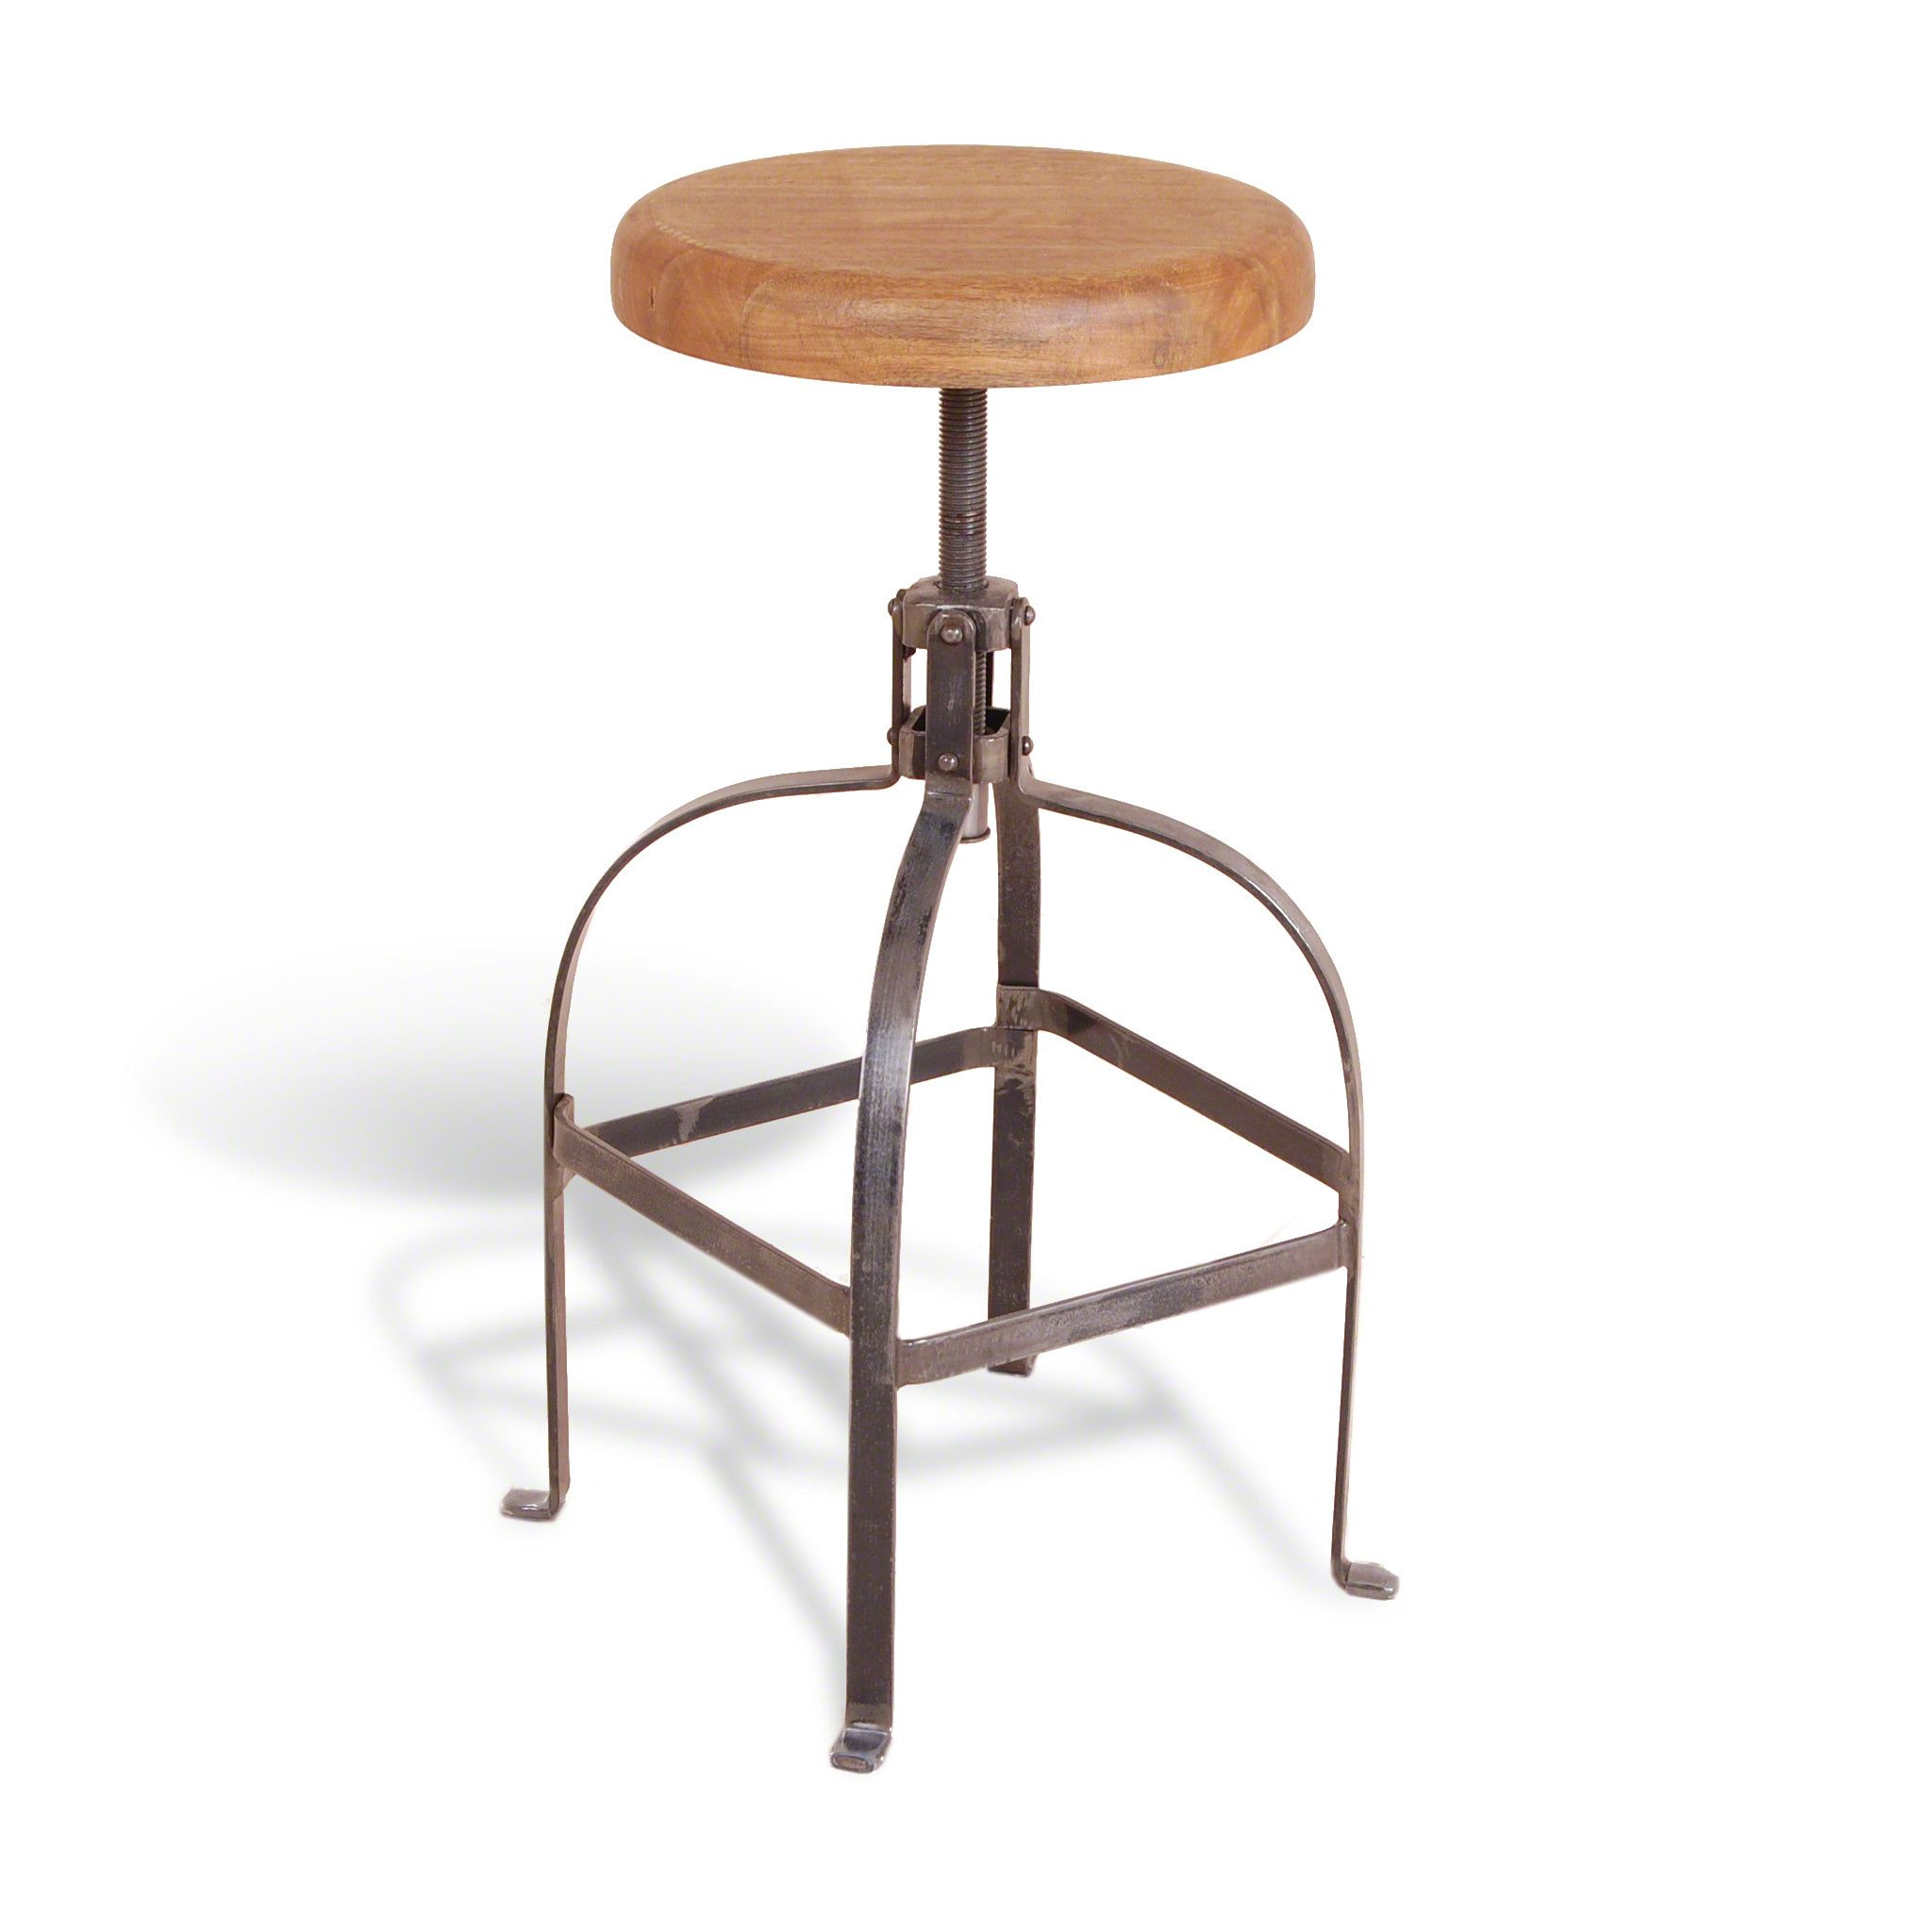 Hoxton Dentist Stool   Stools, Steel and Outdoor dining